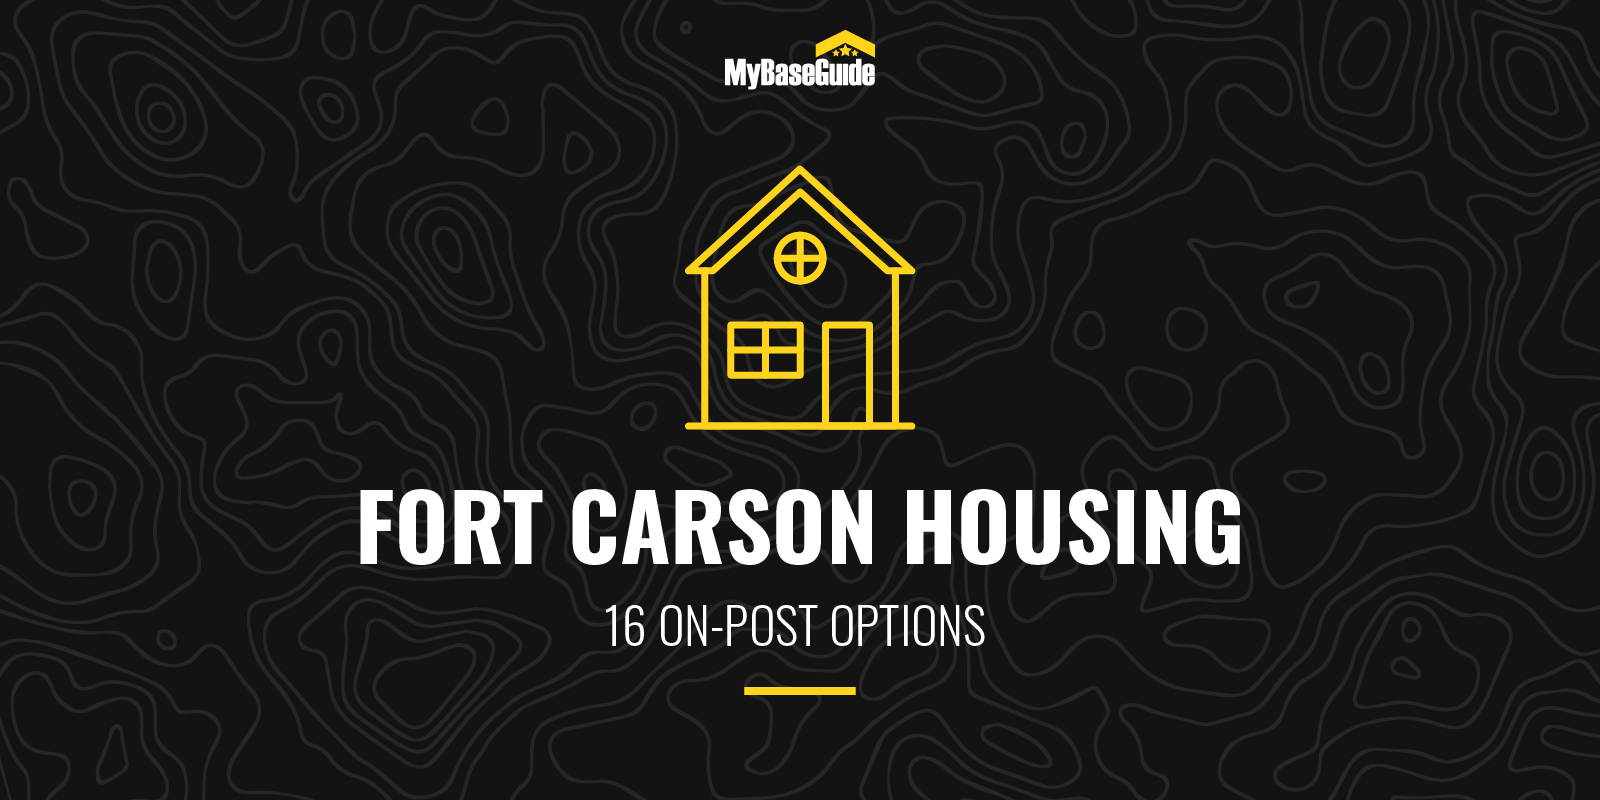 Fort Carson Housing: 16 On Post Options